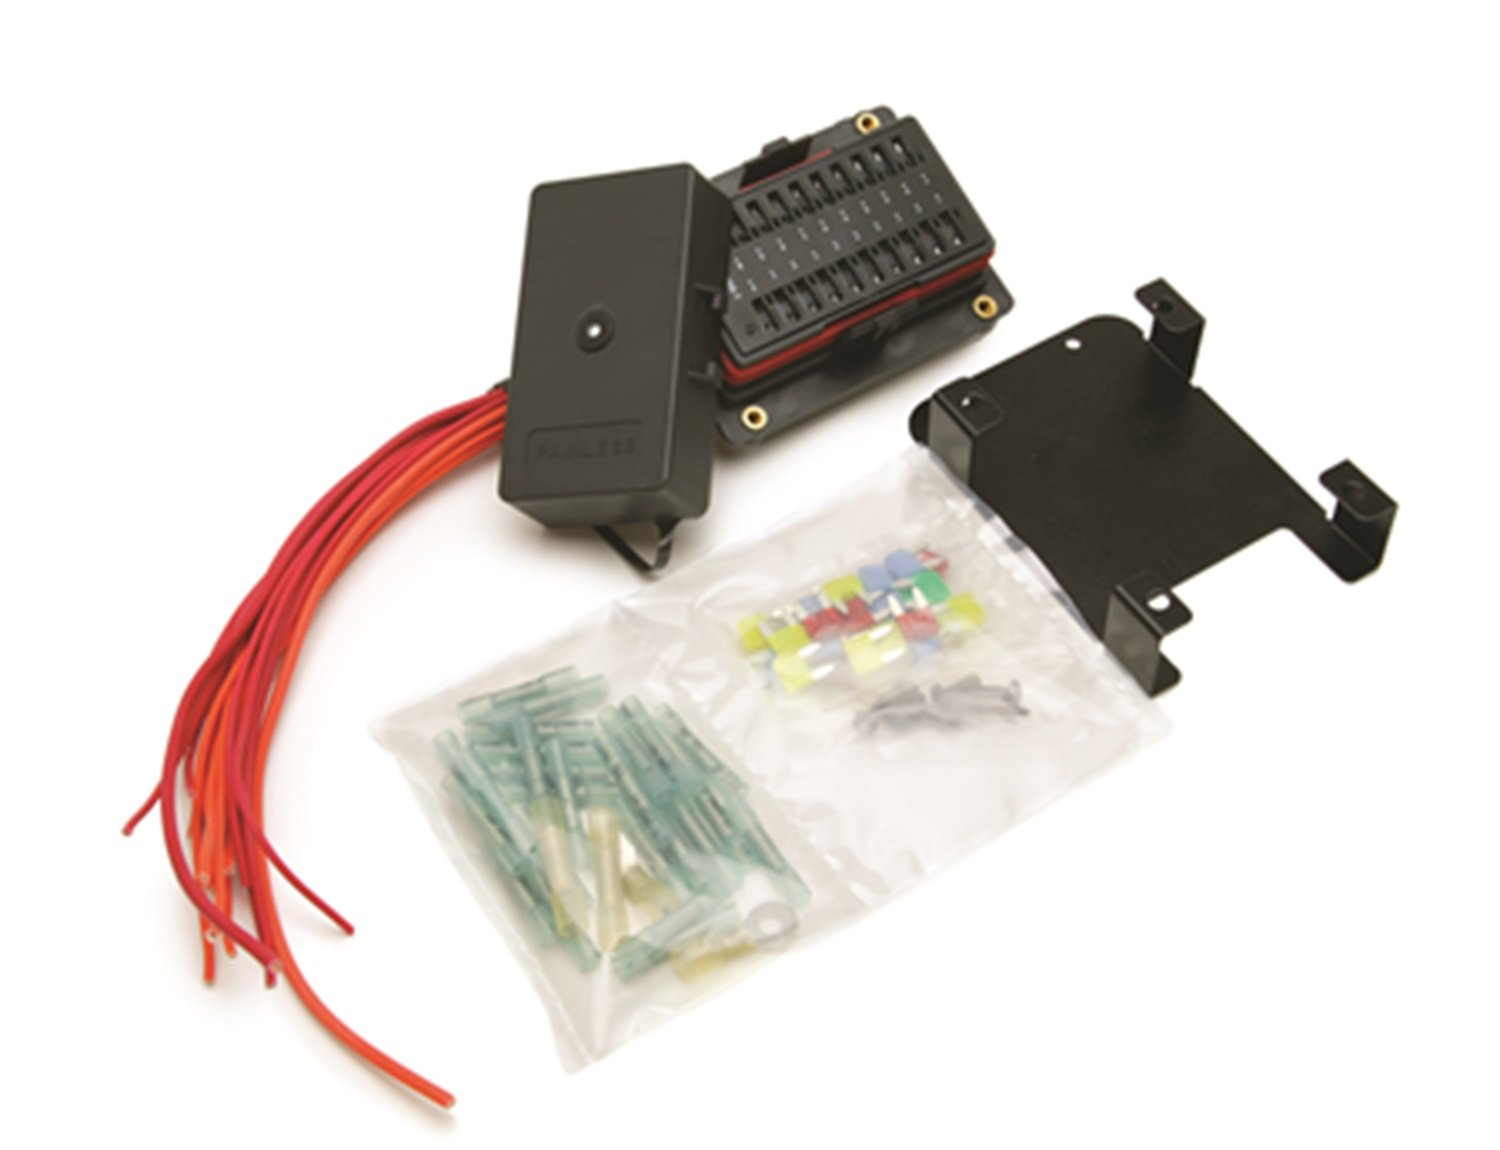 616pRAoZYlL._SL1500_ amazon com painless 30004 20 circuit fuse block kit automotive  at soozxer.org